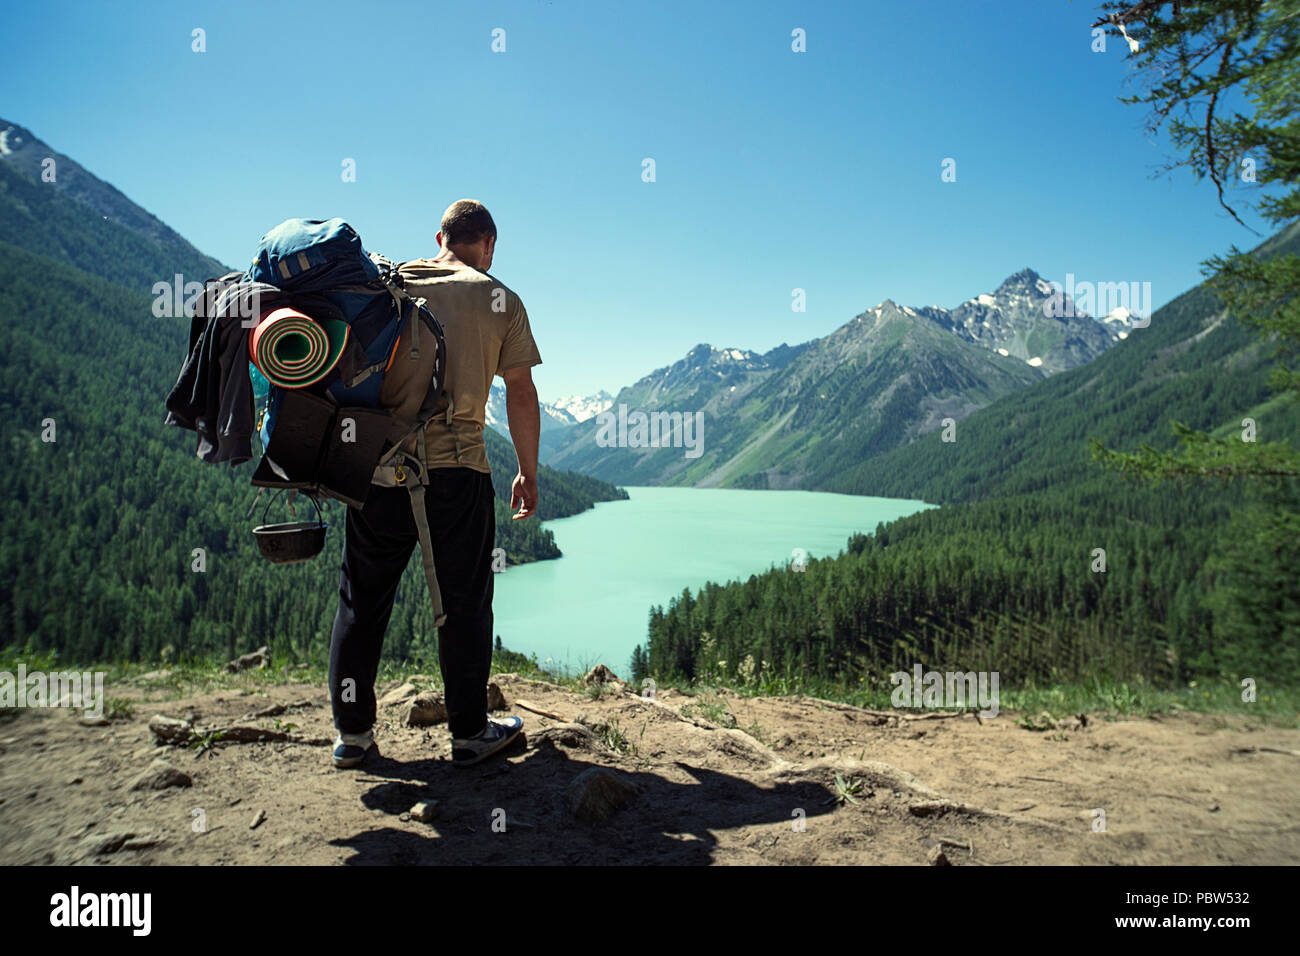 f3484912df23 Man Traveler with big backpack mountaineering Travel Lifestyle concept lake  and mountains on background Summer extreme vacations outdoor. Altai mounta